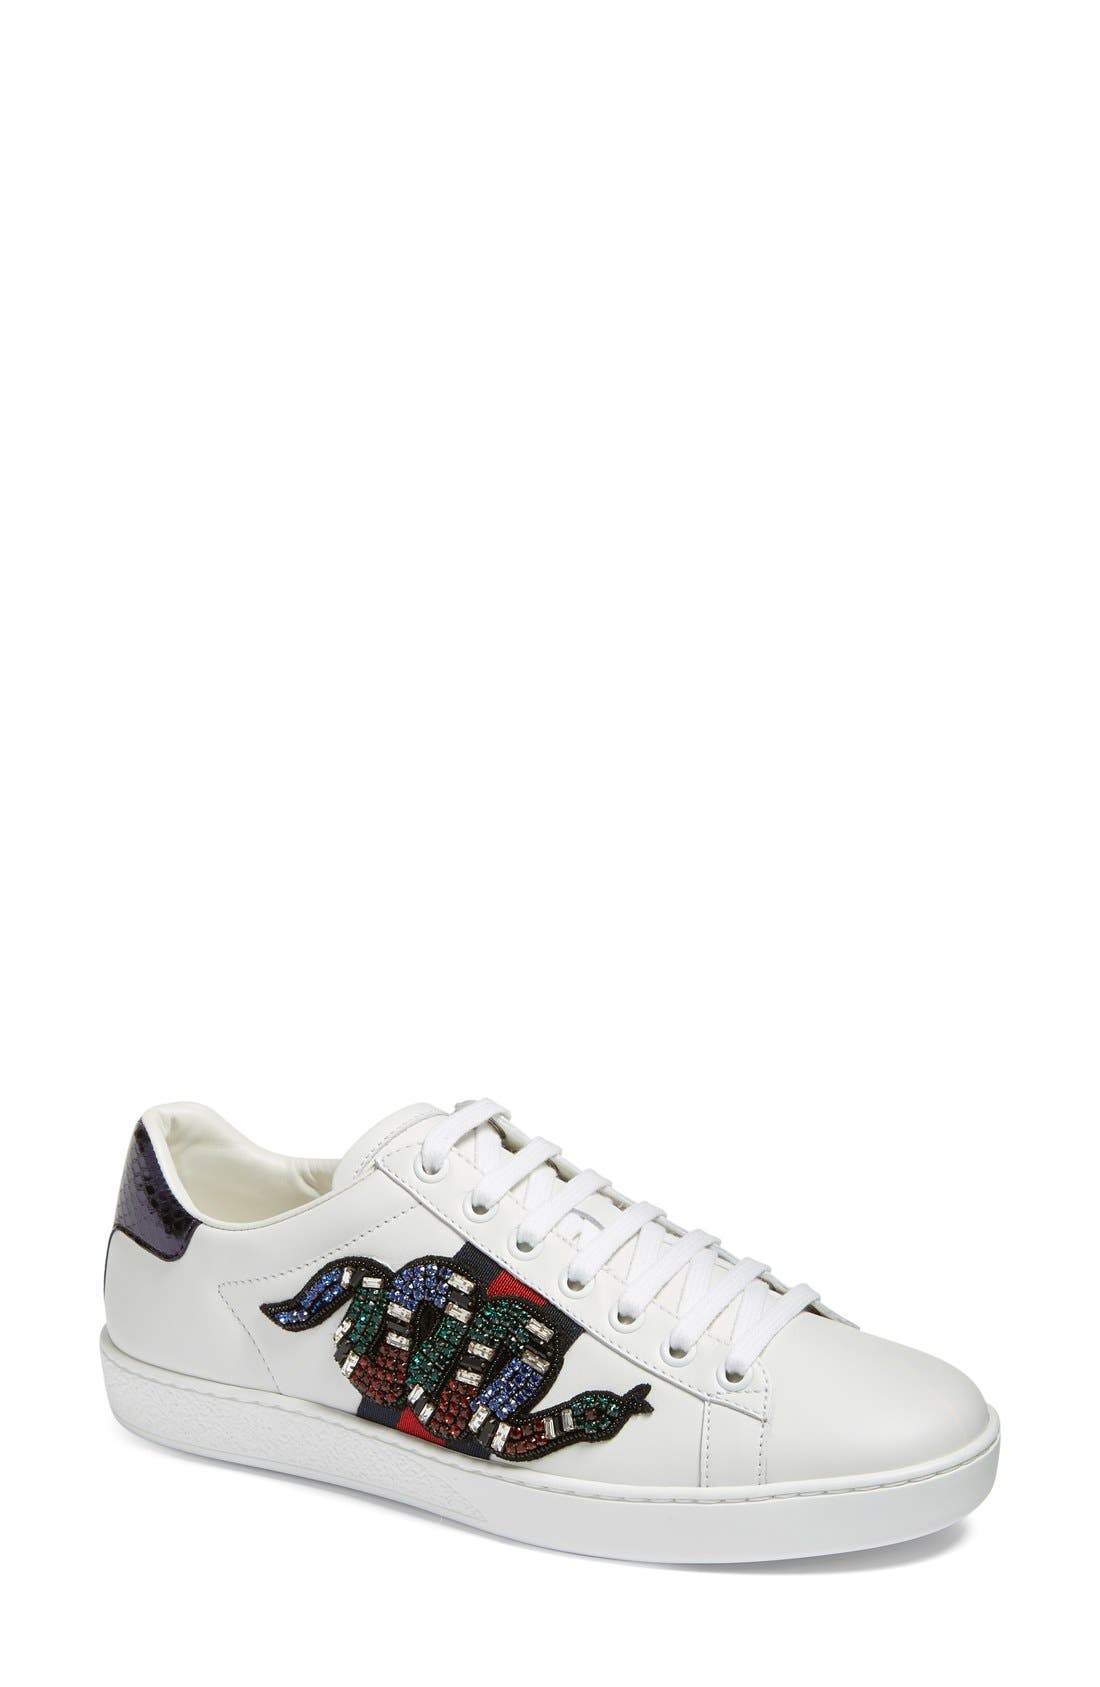 Alternate Image 1 Selected - Gucci New Age Snake Embellished Sneaker (Women)